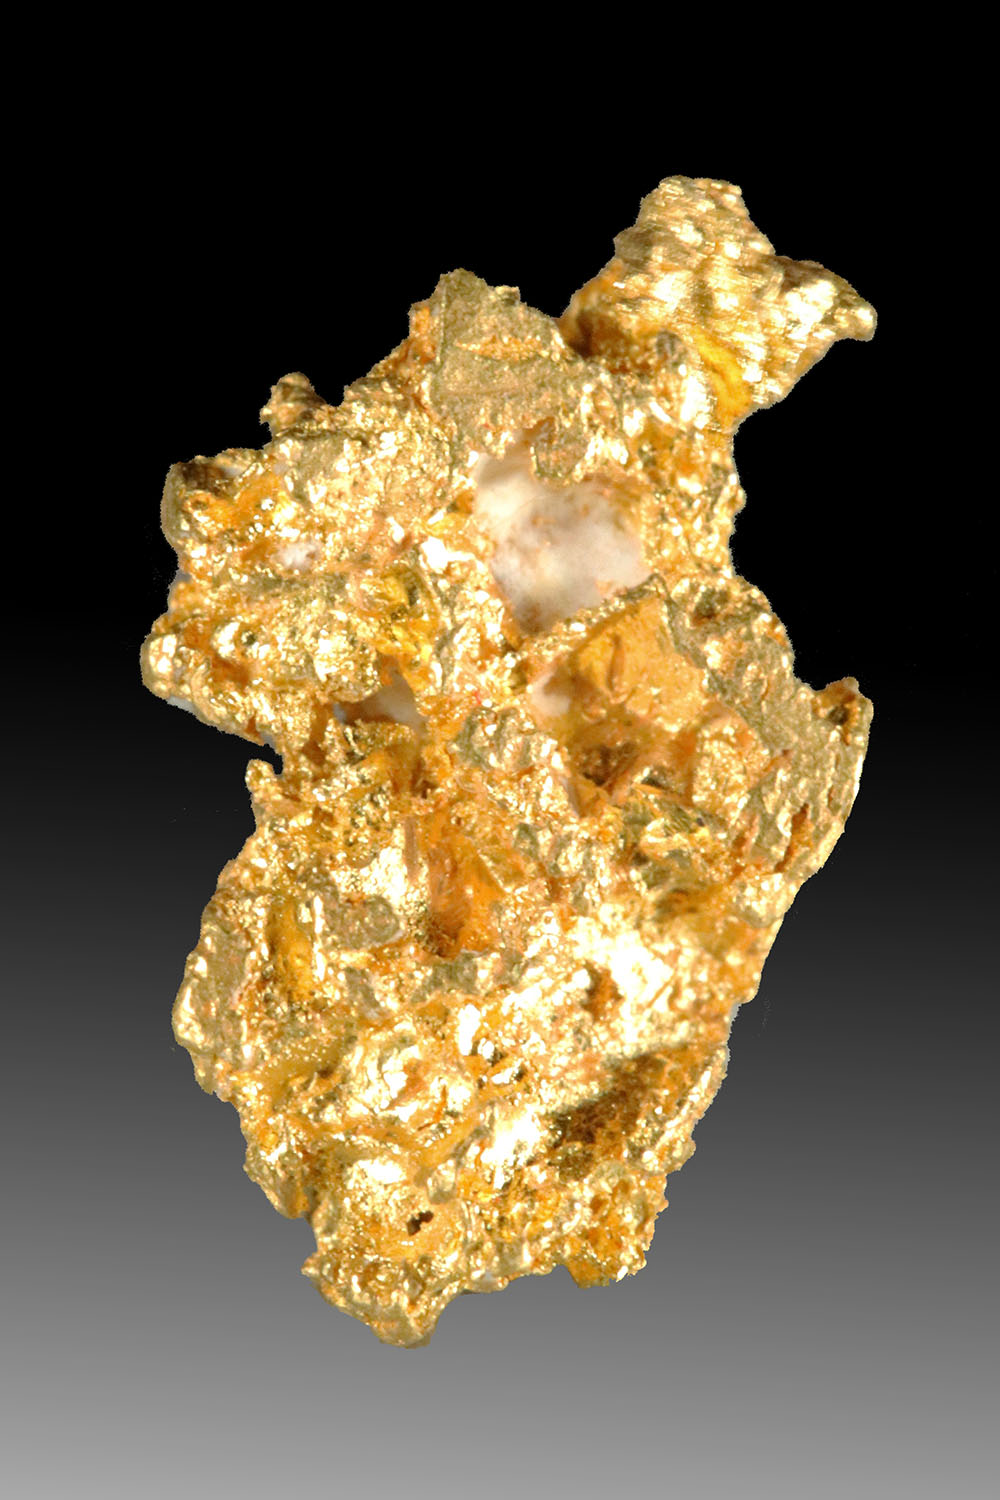 Glimmering Beauty - Jewelry Grade Gold Nugget From Australia